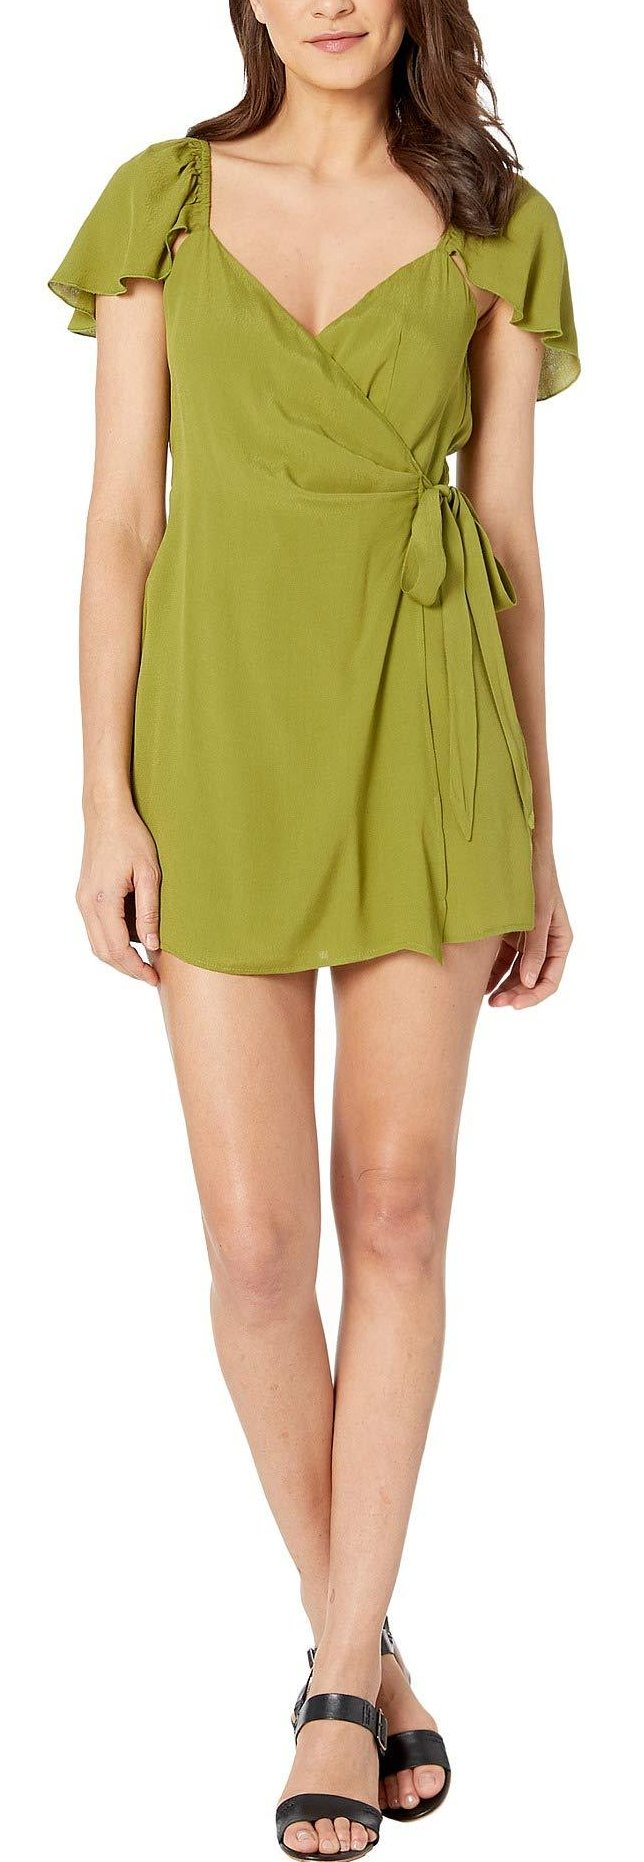 Show Me Your Mumu Elena Romper in Artichoke Crepe MS9-1854